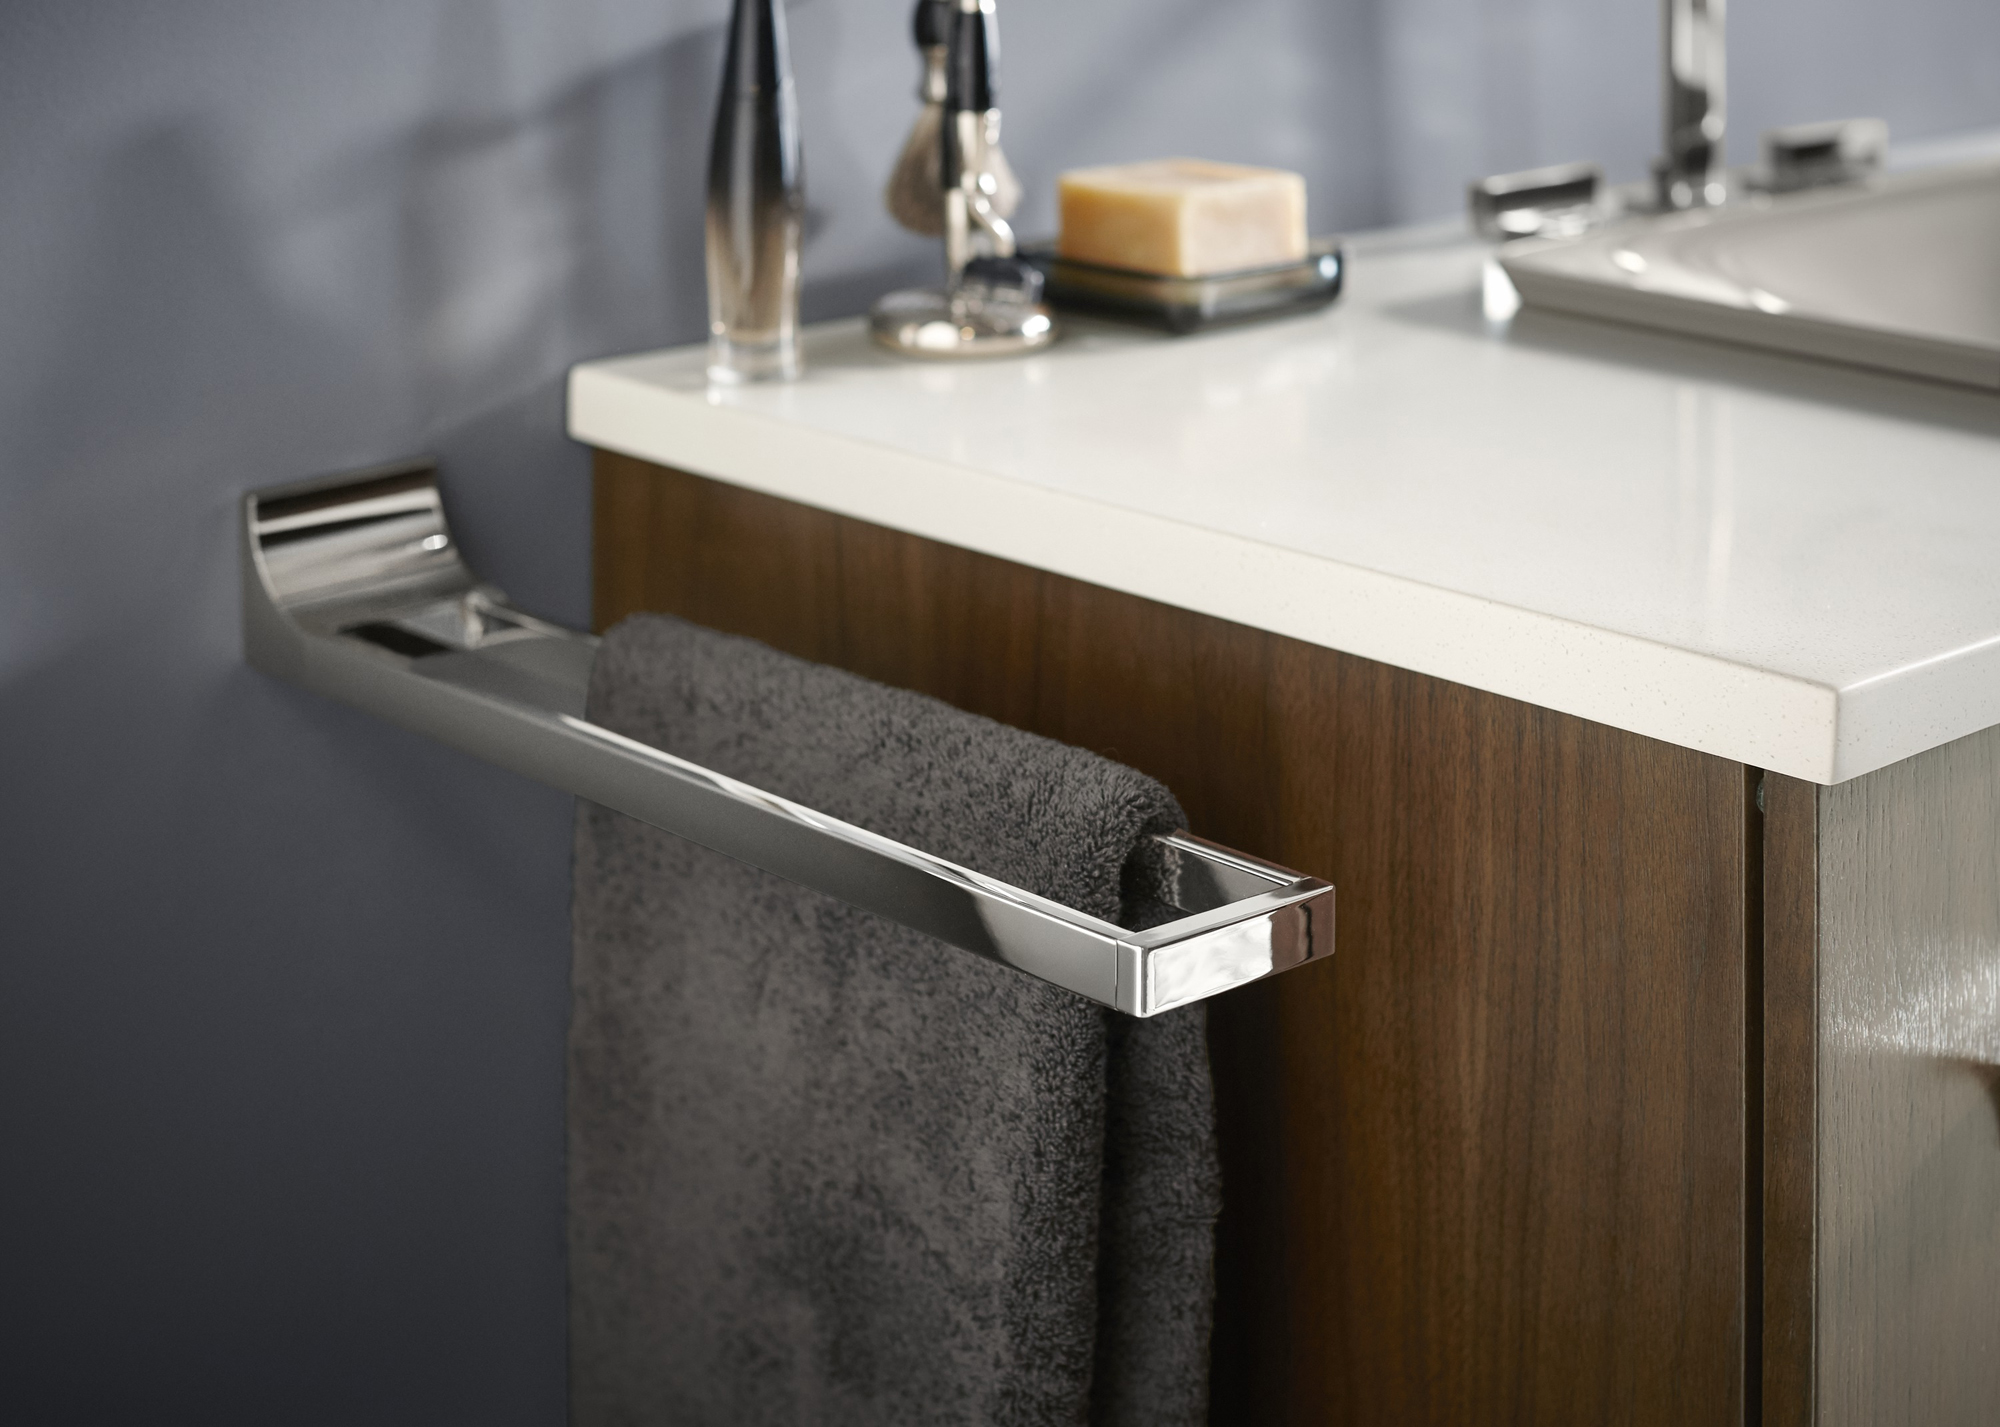 Solid/Expressions® vanity top   Loure® towel arm     A slim towel arm provides convenience without cluttering up wall space.